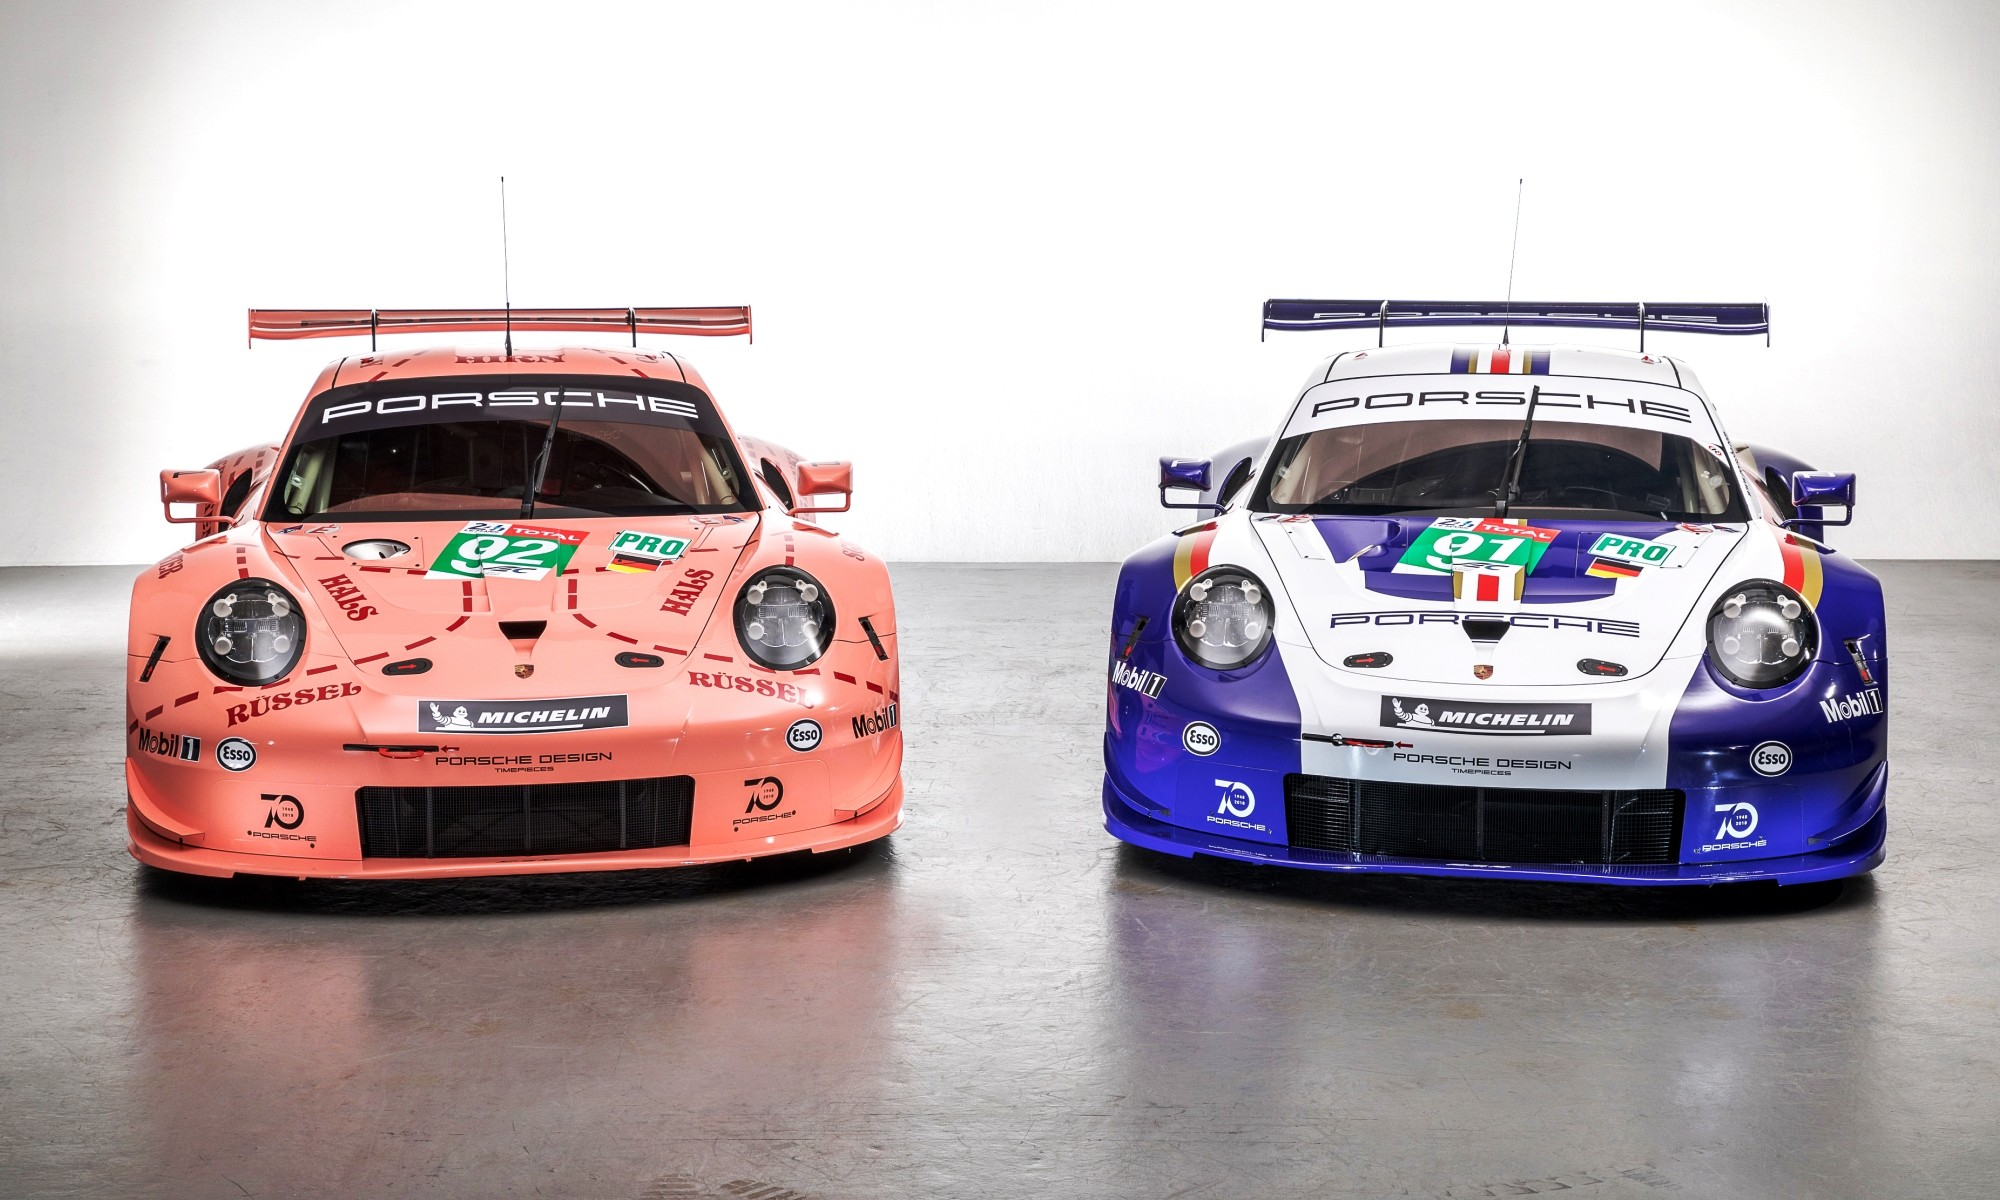 Porsche RSR models will compete at the 2018 24 Hours of Le Mans in classic livery